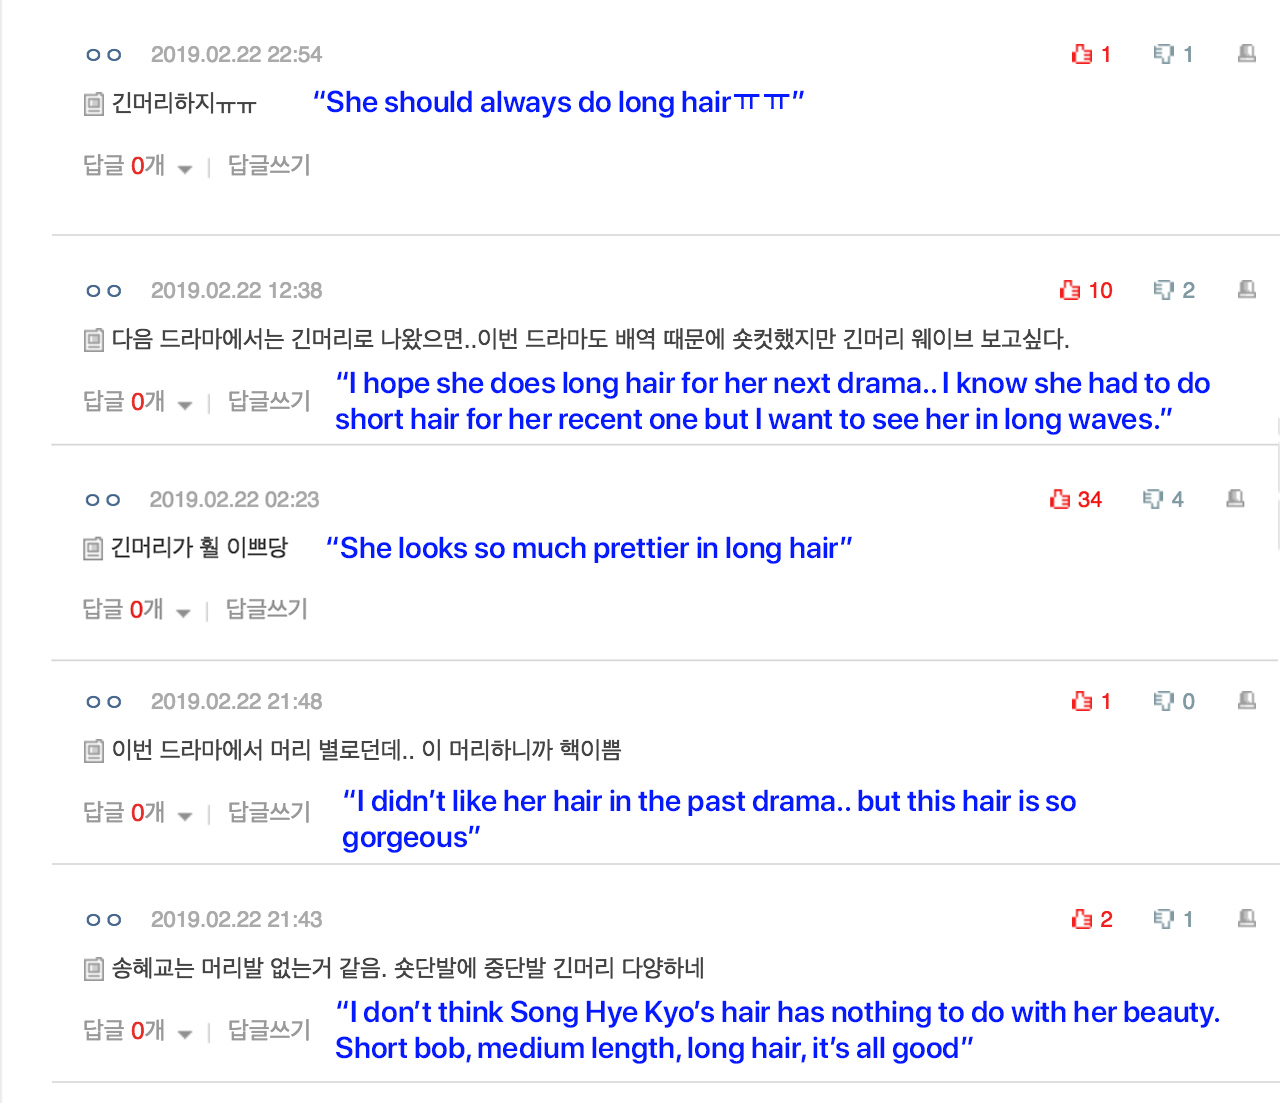 song hye kyo singapore comments hair